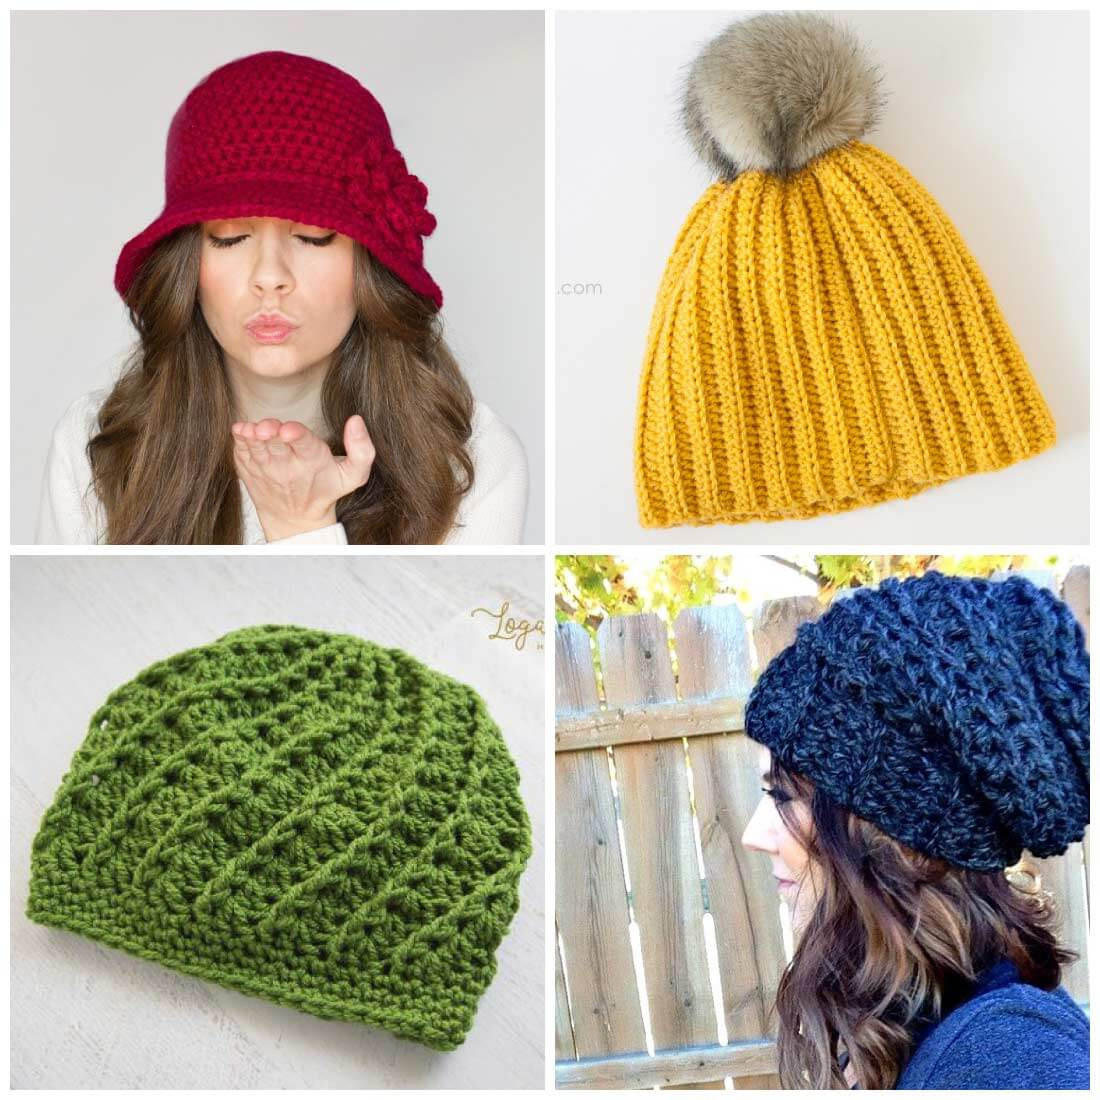 Free Crochet Hats New Free Crochet Hat Patterns Daisy Cottage Designs Of Incredible 43 Photos Free Crochet Hats